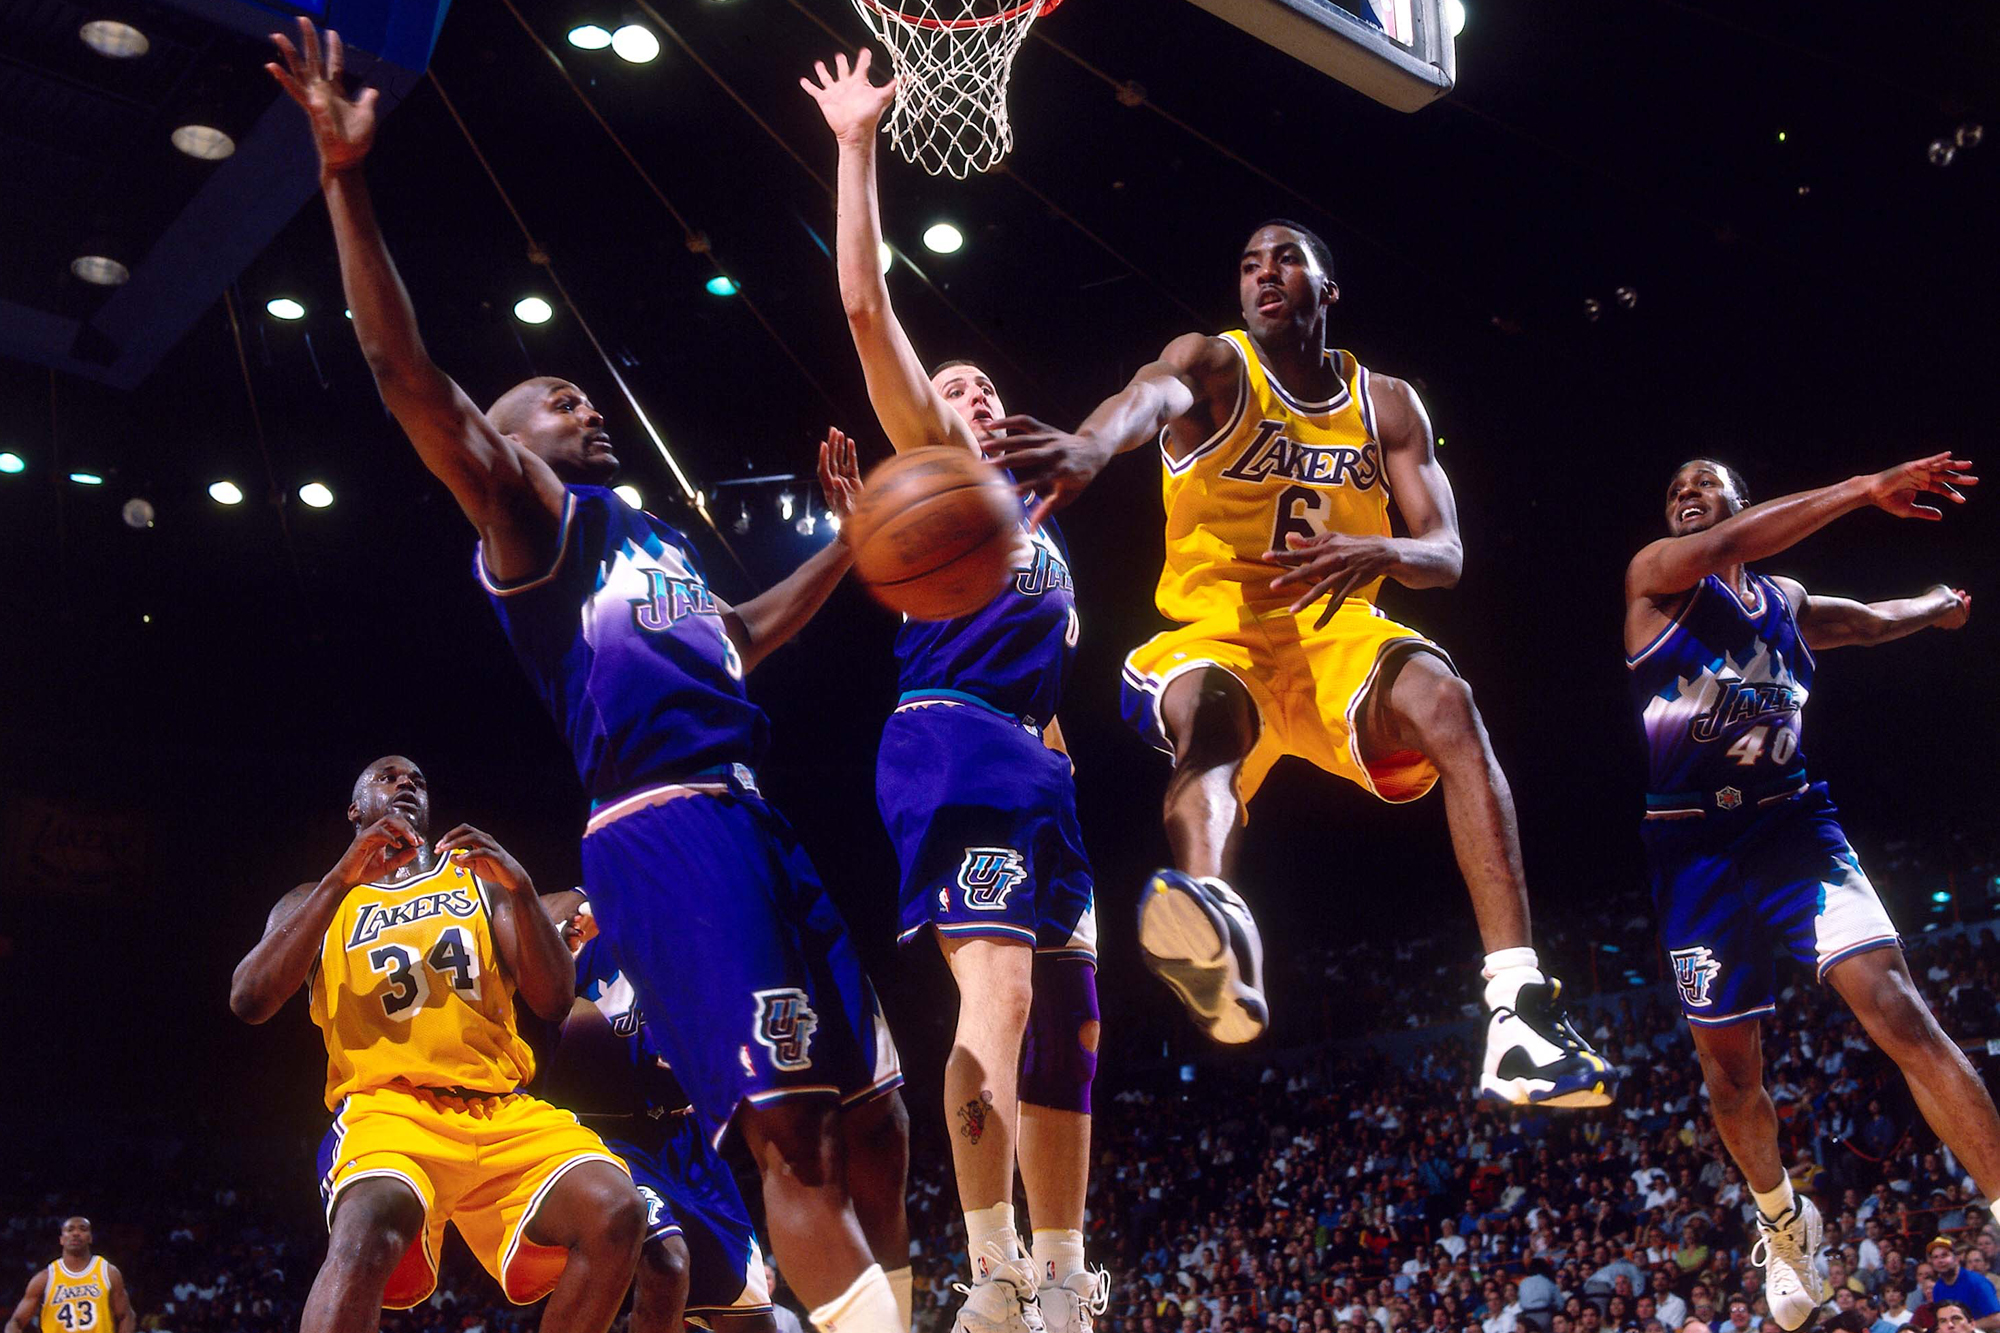 Eddie Jones (second from right) of the Los Angeles Lakers passes against  the Utah Jazz in Game 3 of the Western Conference finals played on May 22 55e720cb8